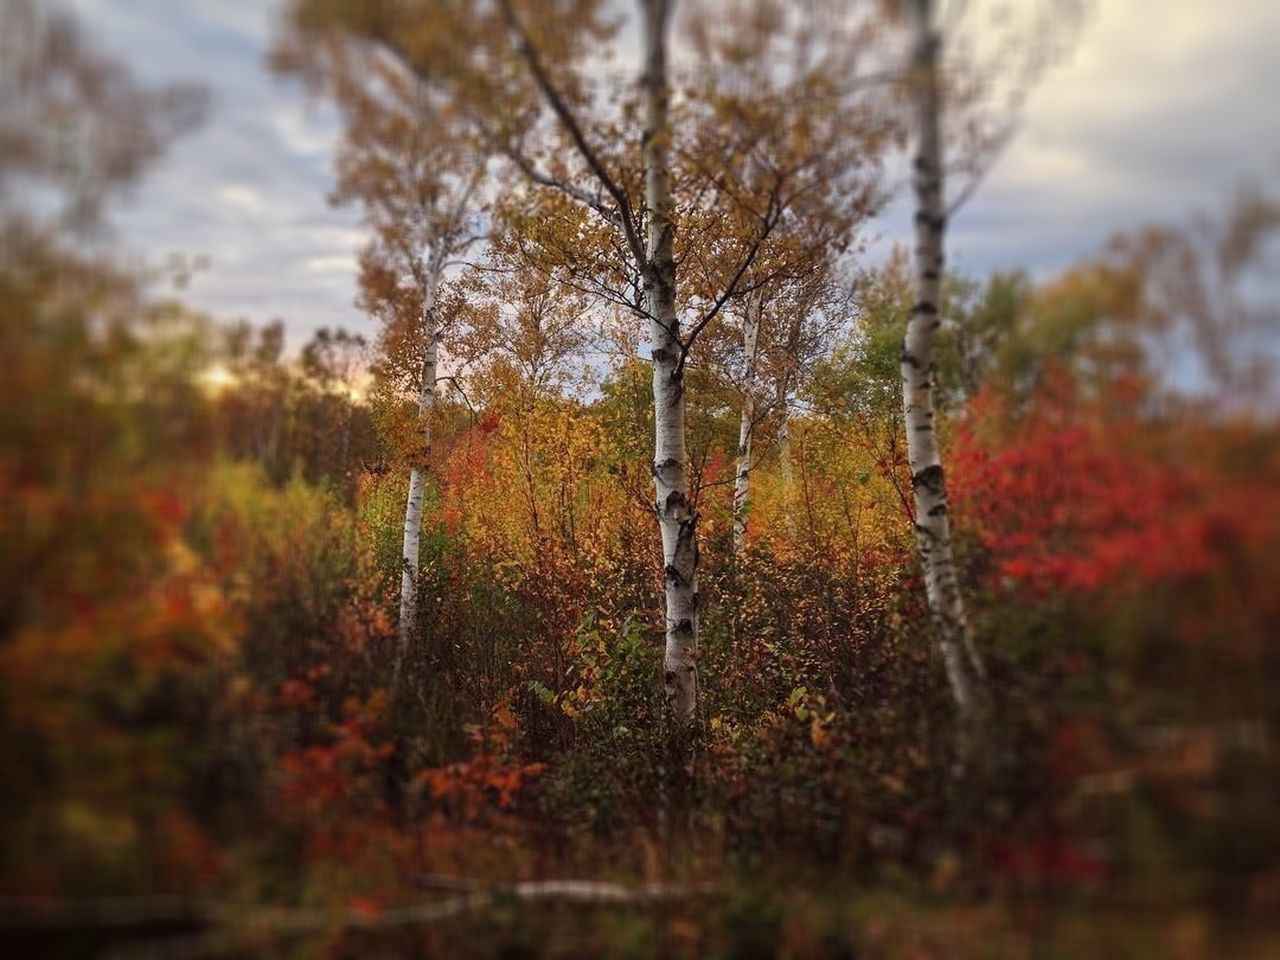 nature, autumn, tree, growth, beauty in nature, tranquility, outdoors, tranquil scene, day, change, no people, scenics, branch, sky